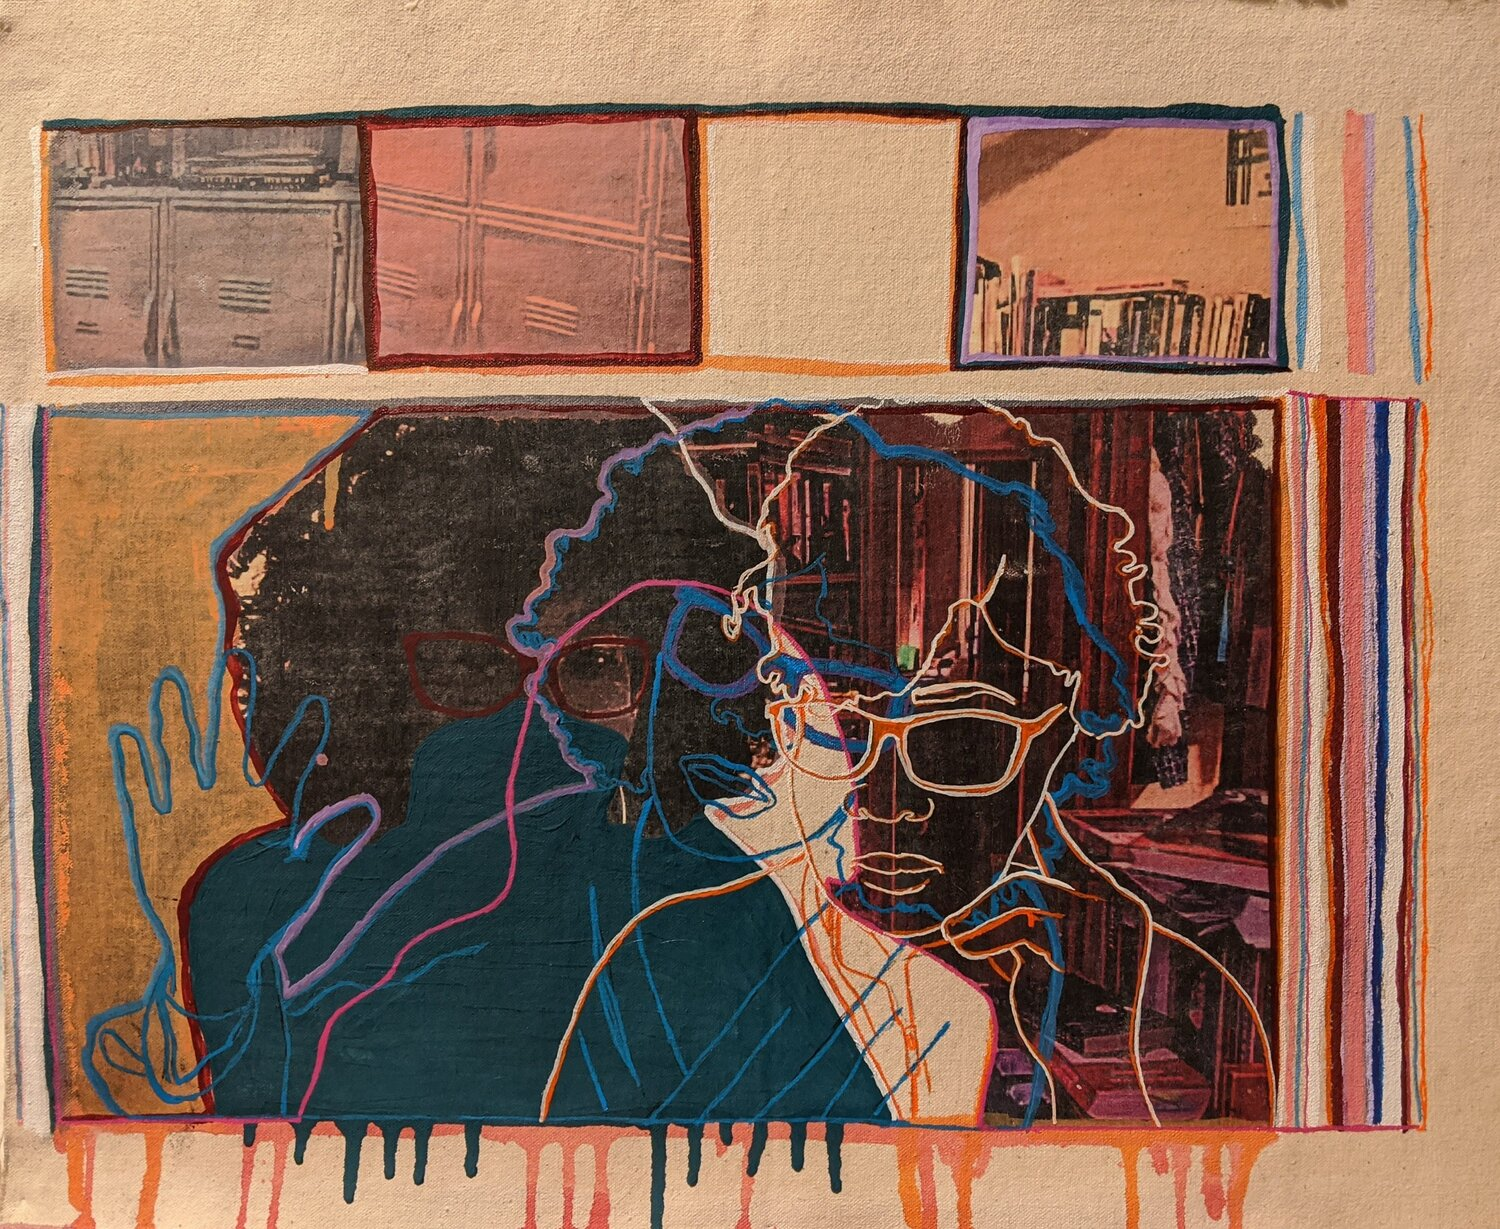 A piece of mixed-media art with a tan background; 4 squares on the top of the canvas represent abstract images from school including lockers and a library. The main portion of the image is a facsimile of a computer screen with abstract individuals and the layers of drawing and sketching. The image drips paint on to the lower part of the piece of art.